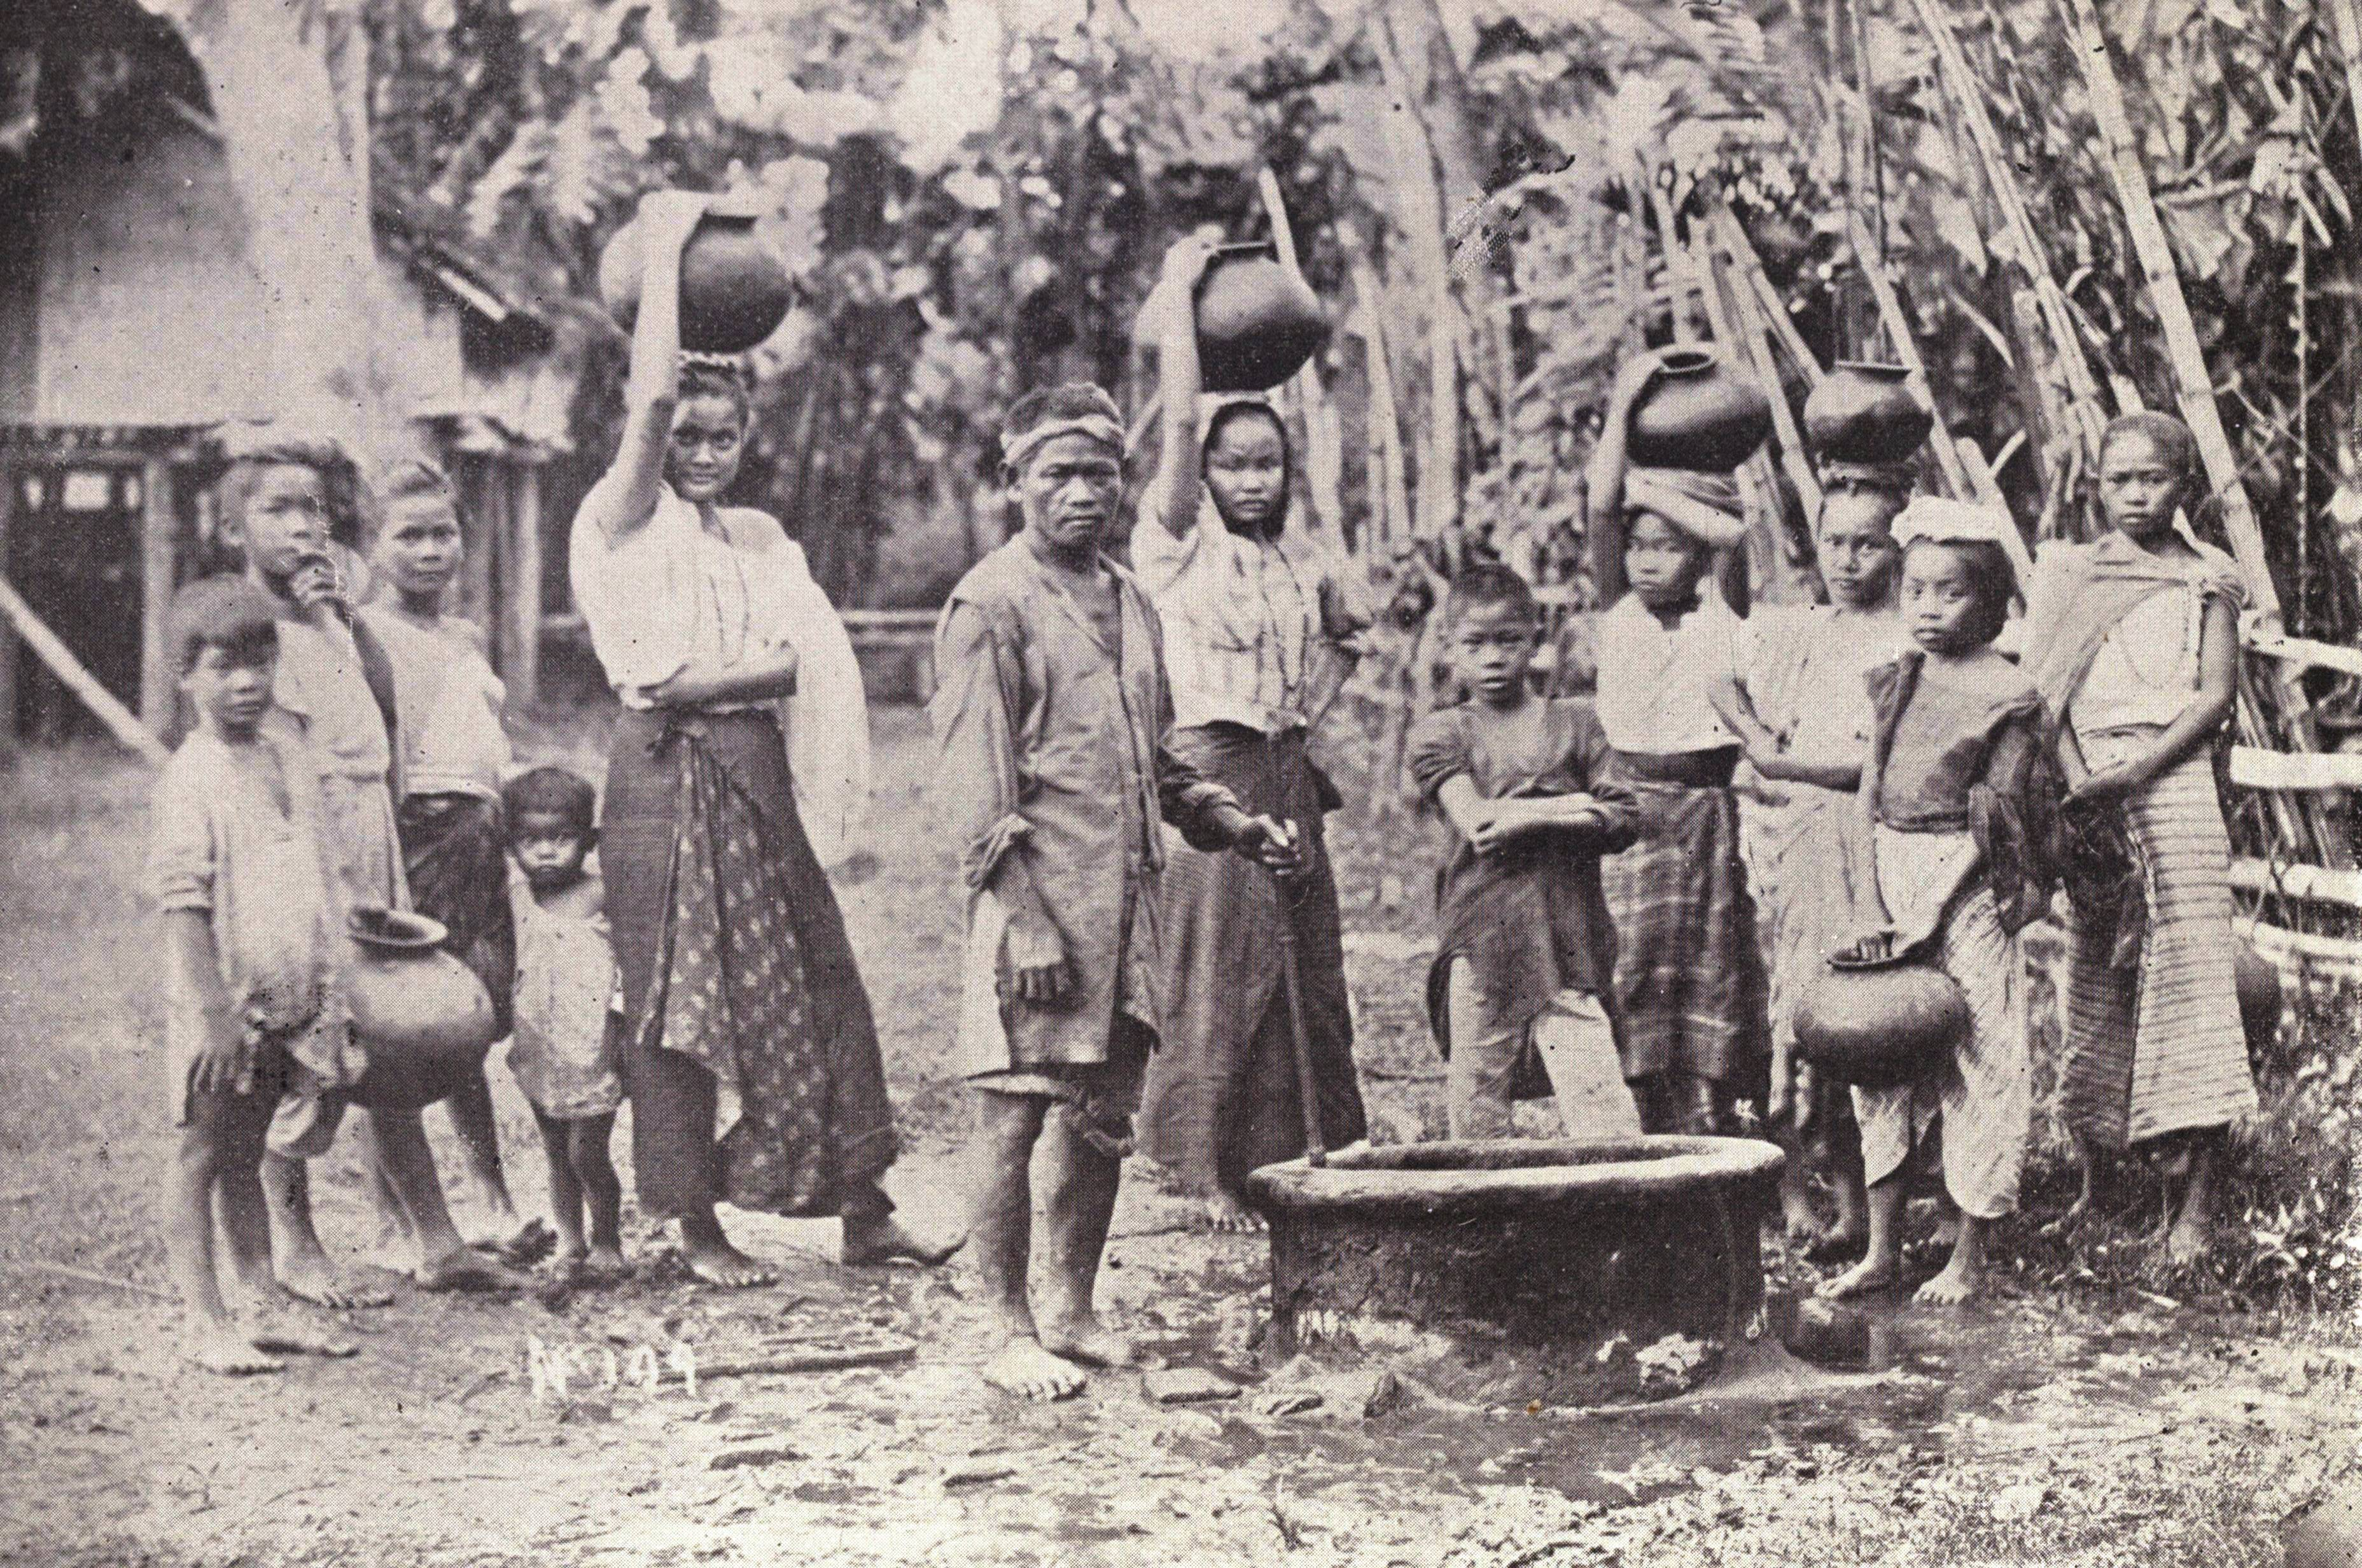 filipino socio cultural values during the pre spanish period The culture of the philippines is a the country's pre-colonial cultural traditions and the socio were written during the spanish period.